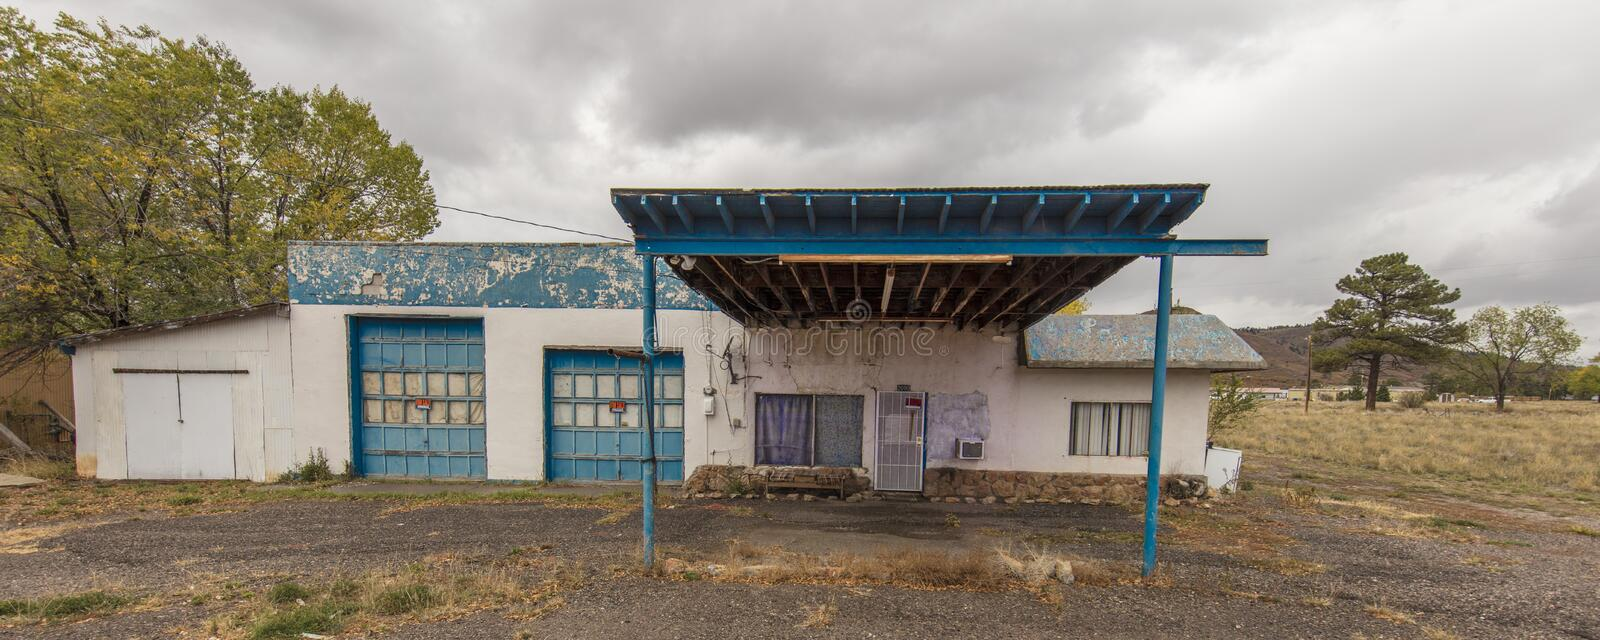 Deserted gas station, Chama New Mexico stock photos